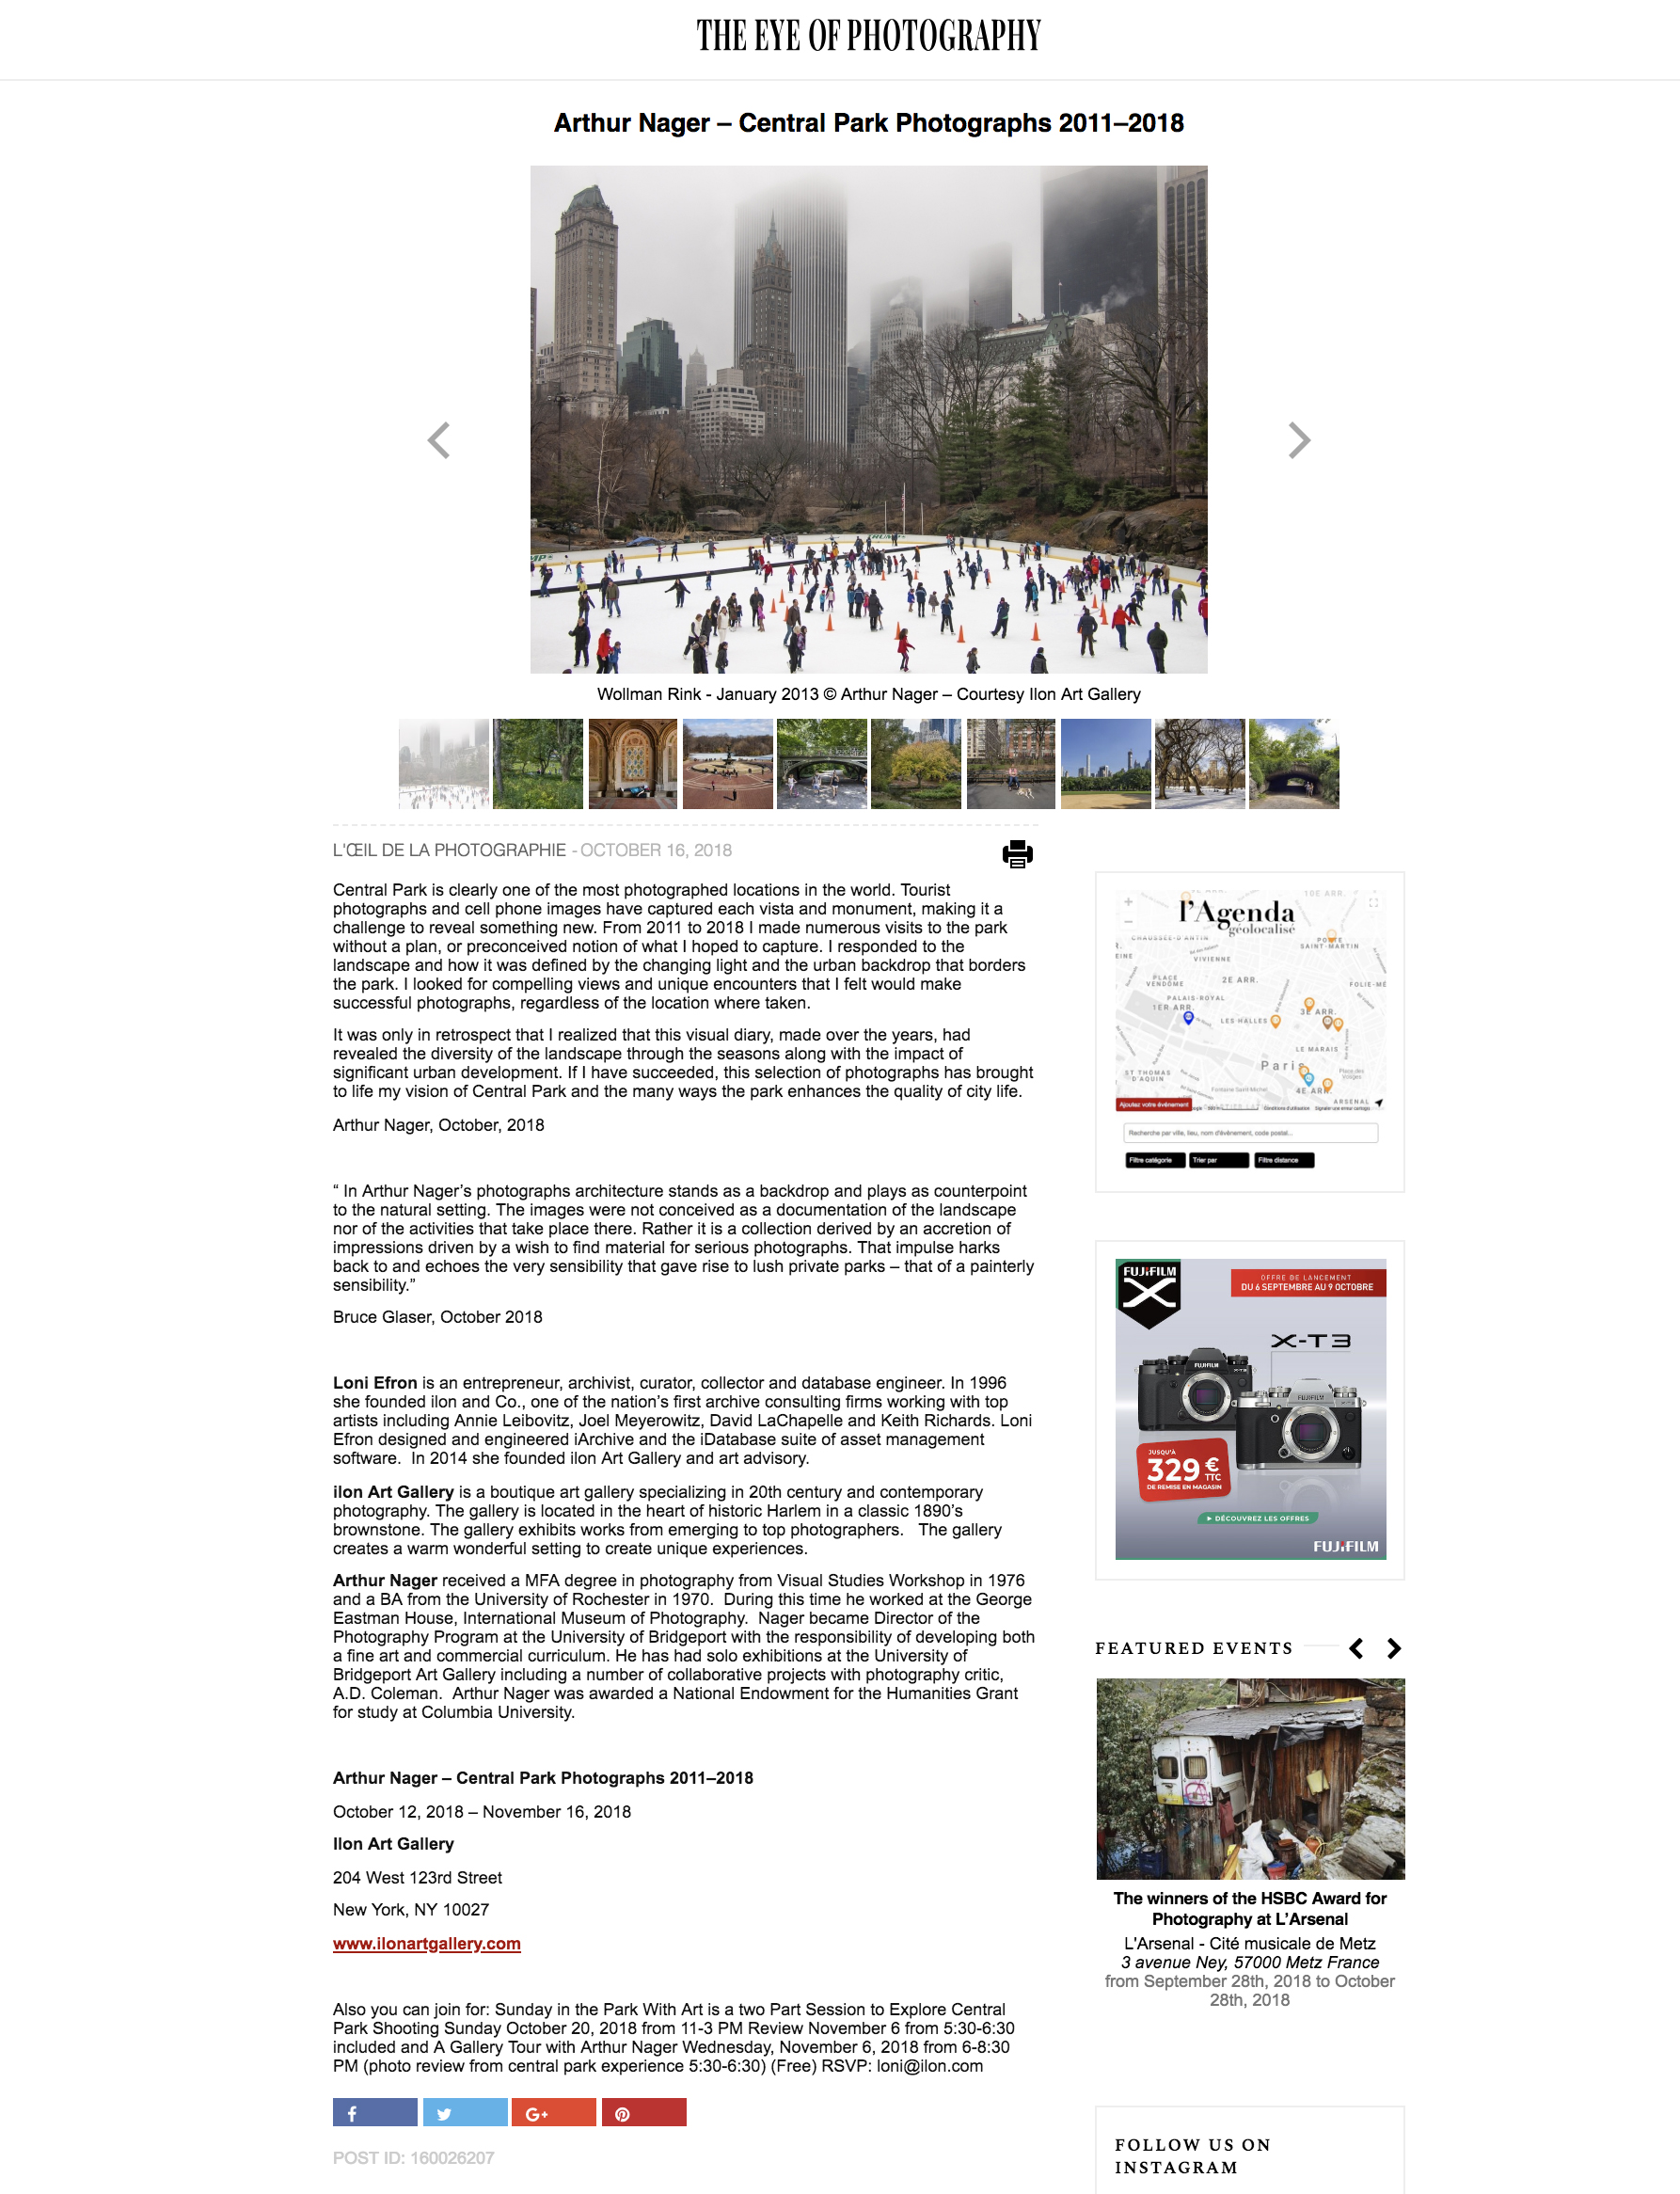 THE EYE OF PHOTOGRAPHY Showcased Central Park Photographs at the Ilon Gallery